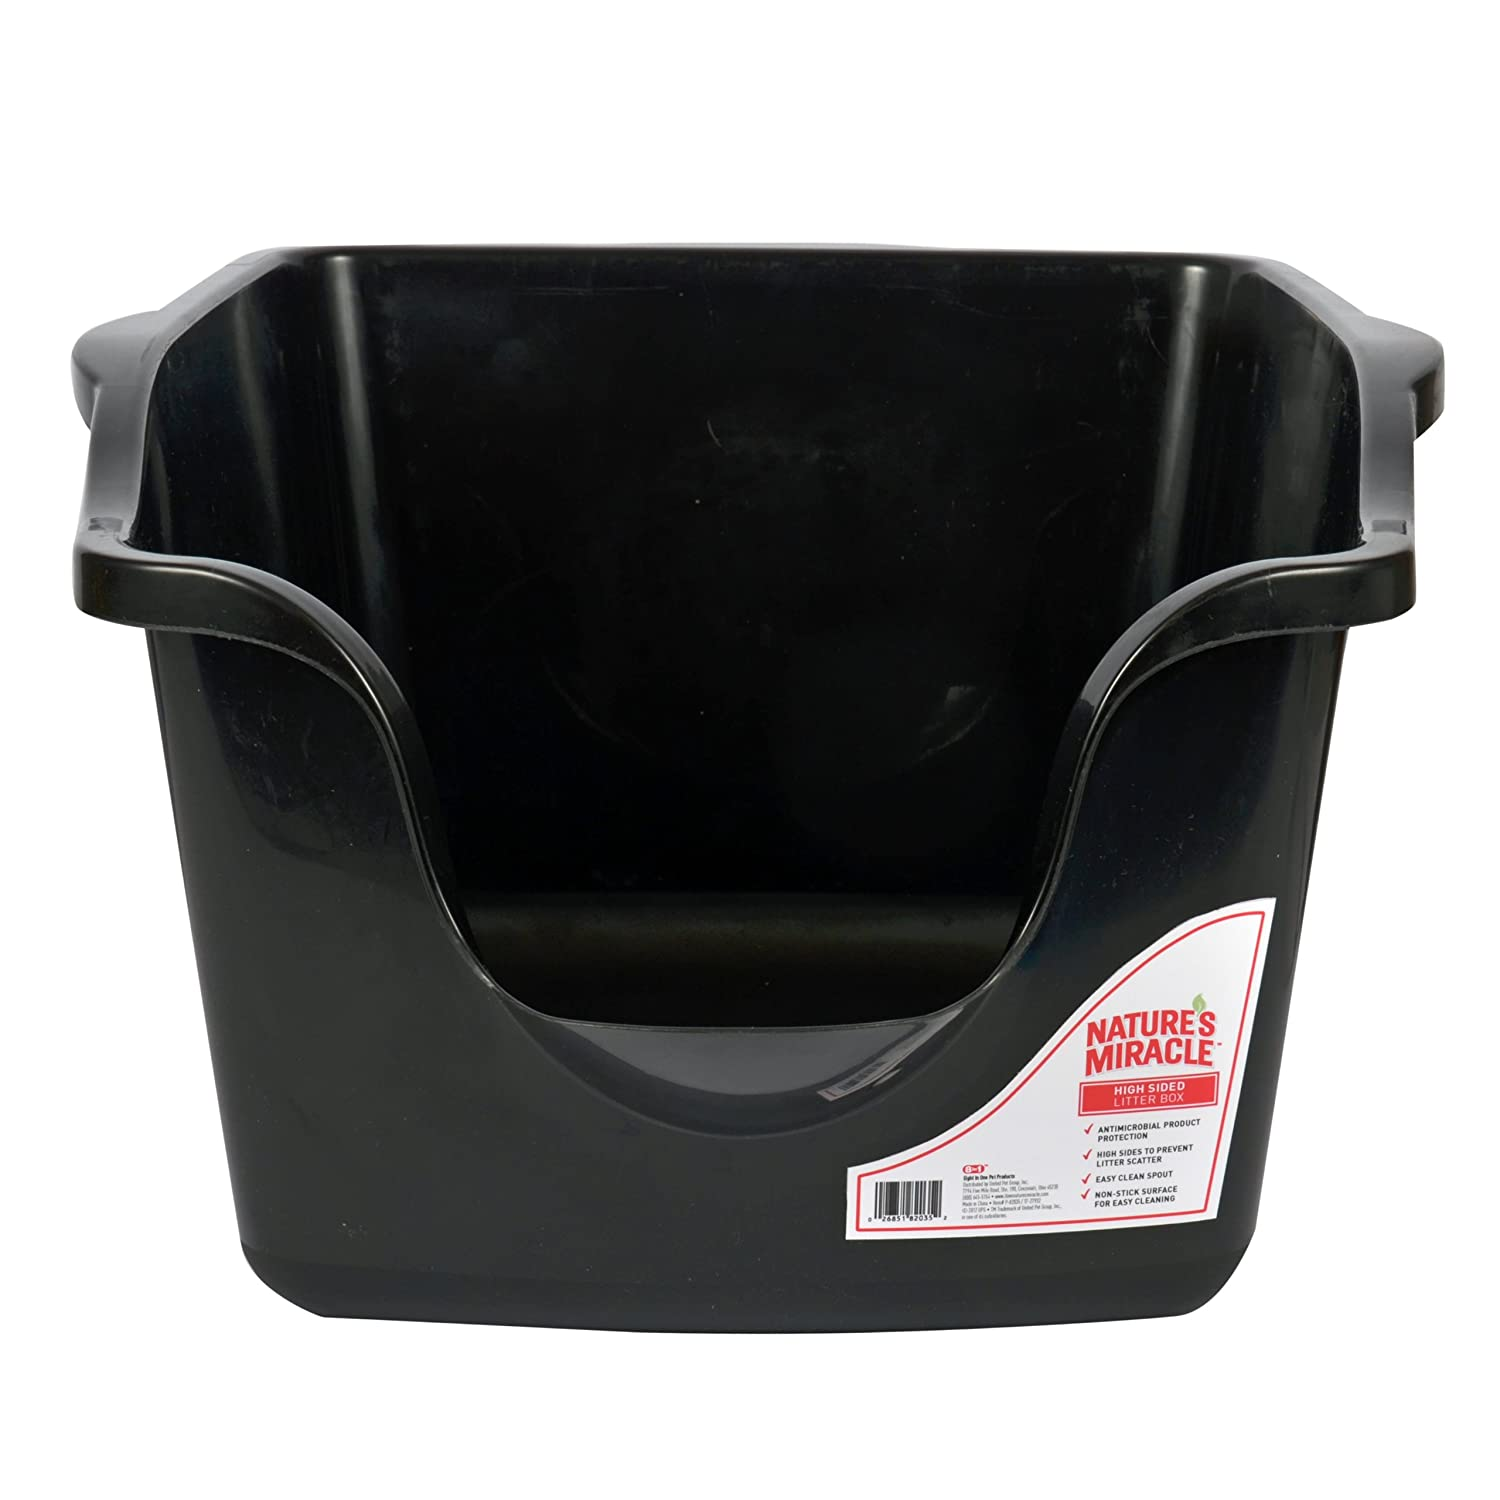 amazoncom miracle highsided litter box p82035 pet supplies - Litter Boxes